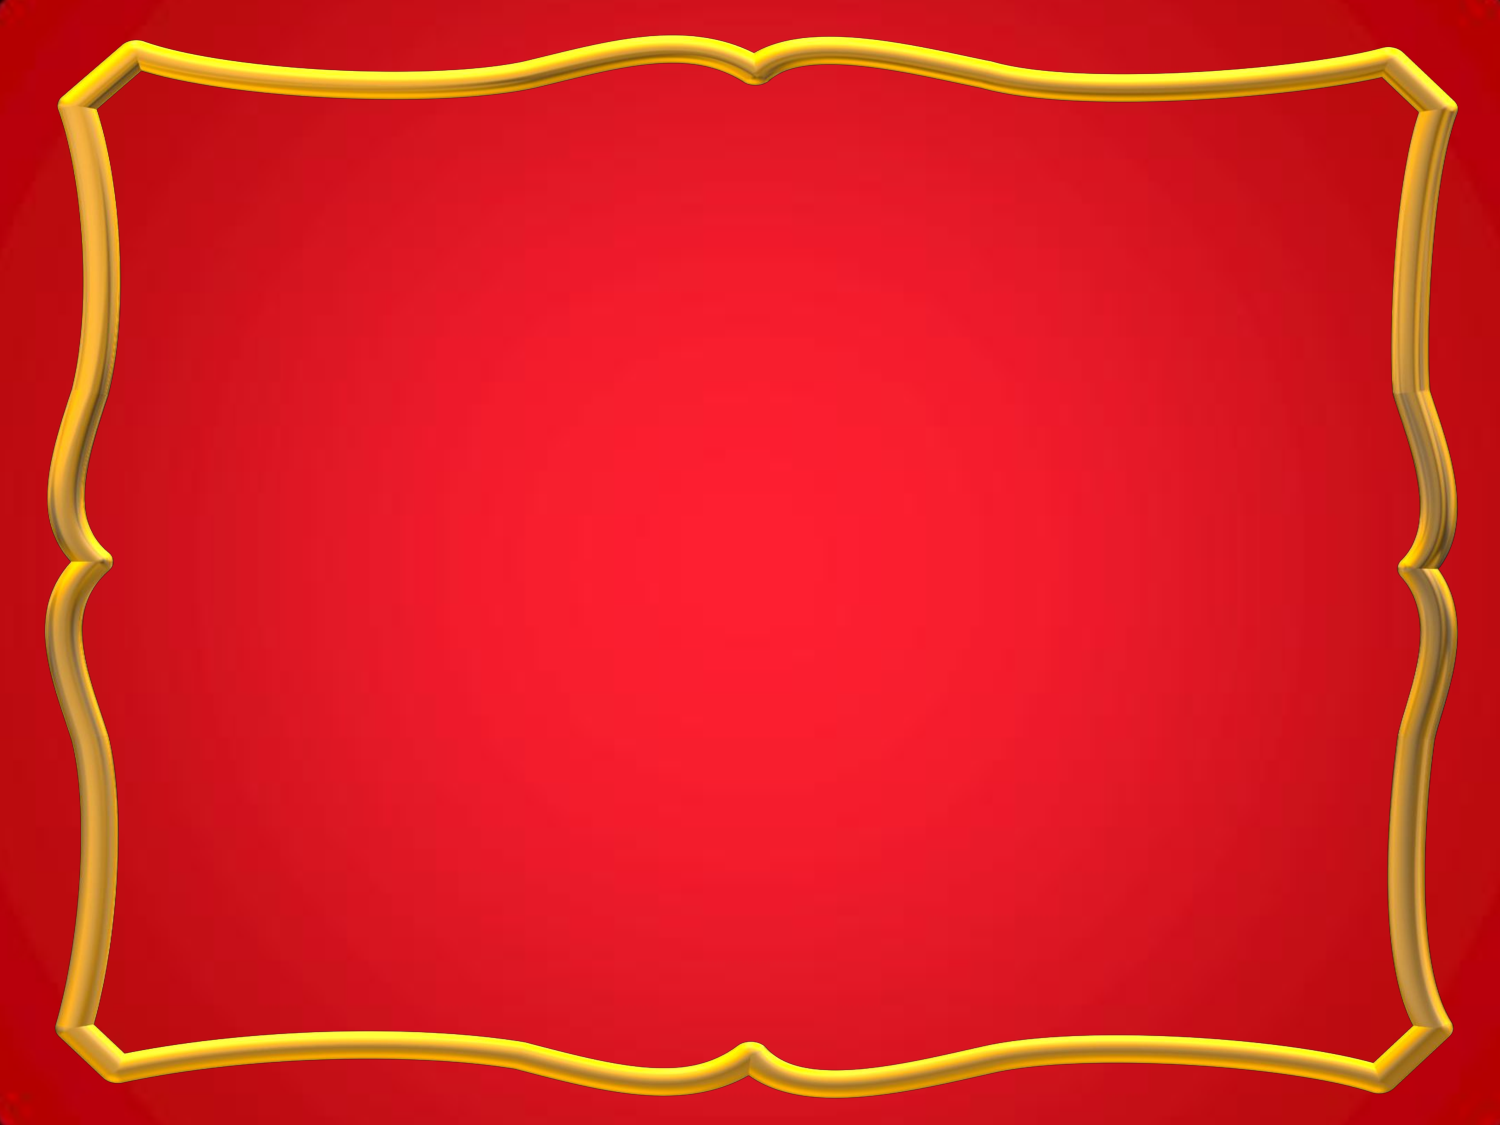 Free frames and borders png red with gold frame for Red with gold